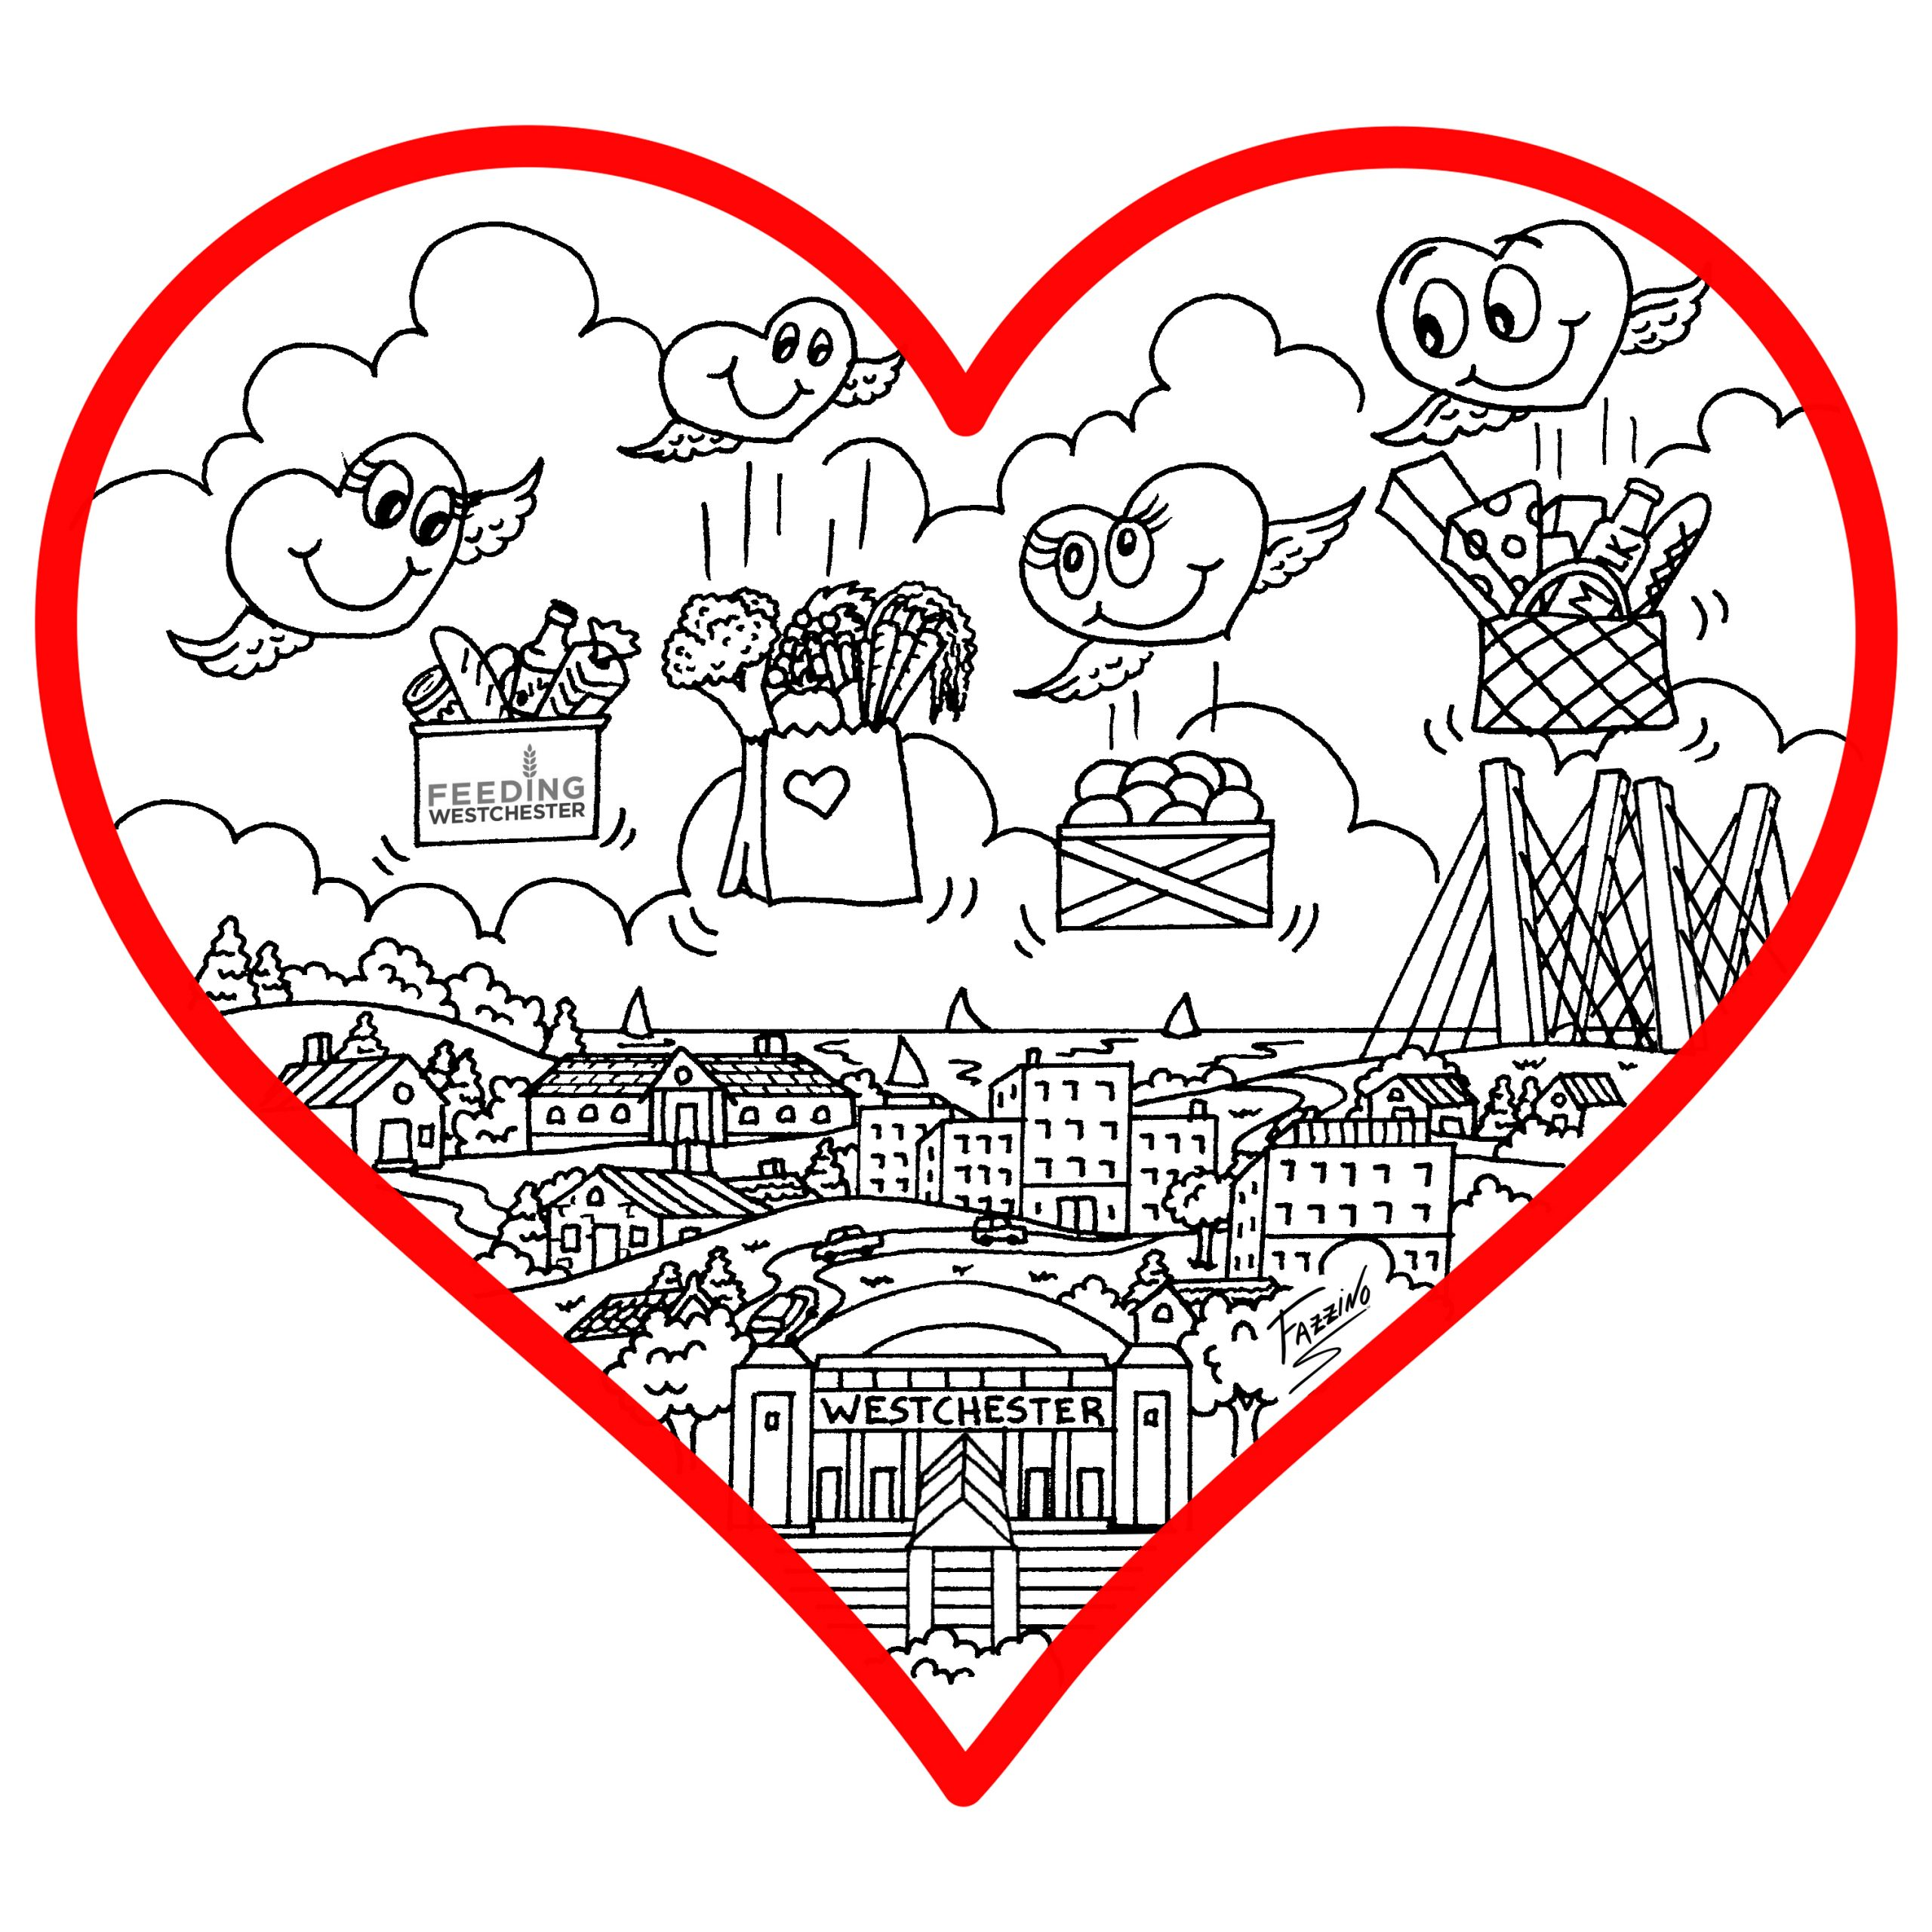 Fazzino's Love in Westchester-Themed Coloring Book image